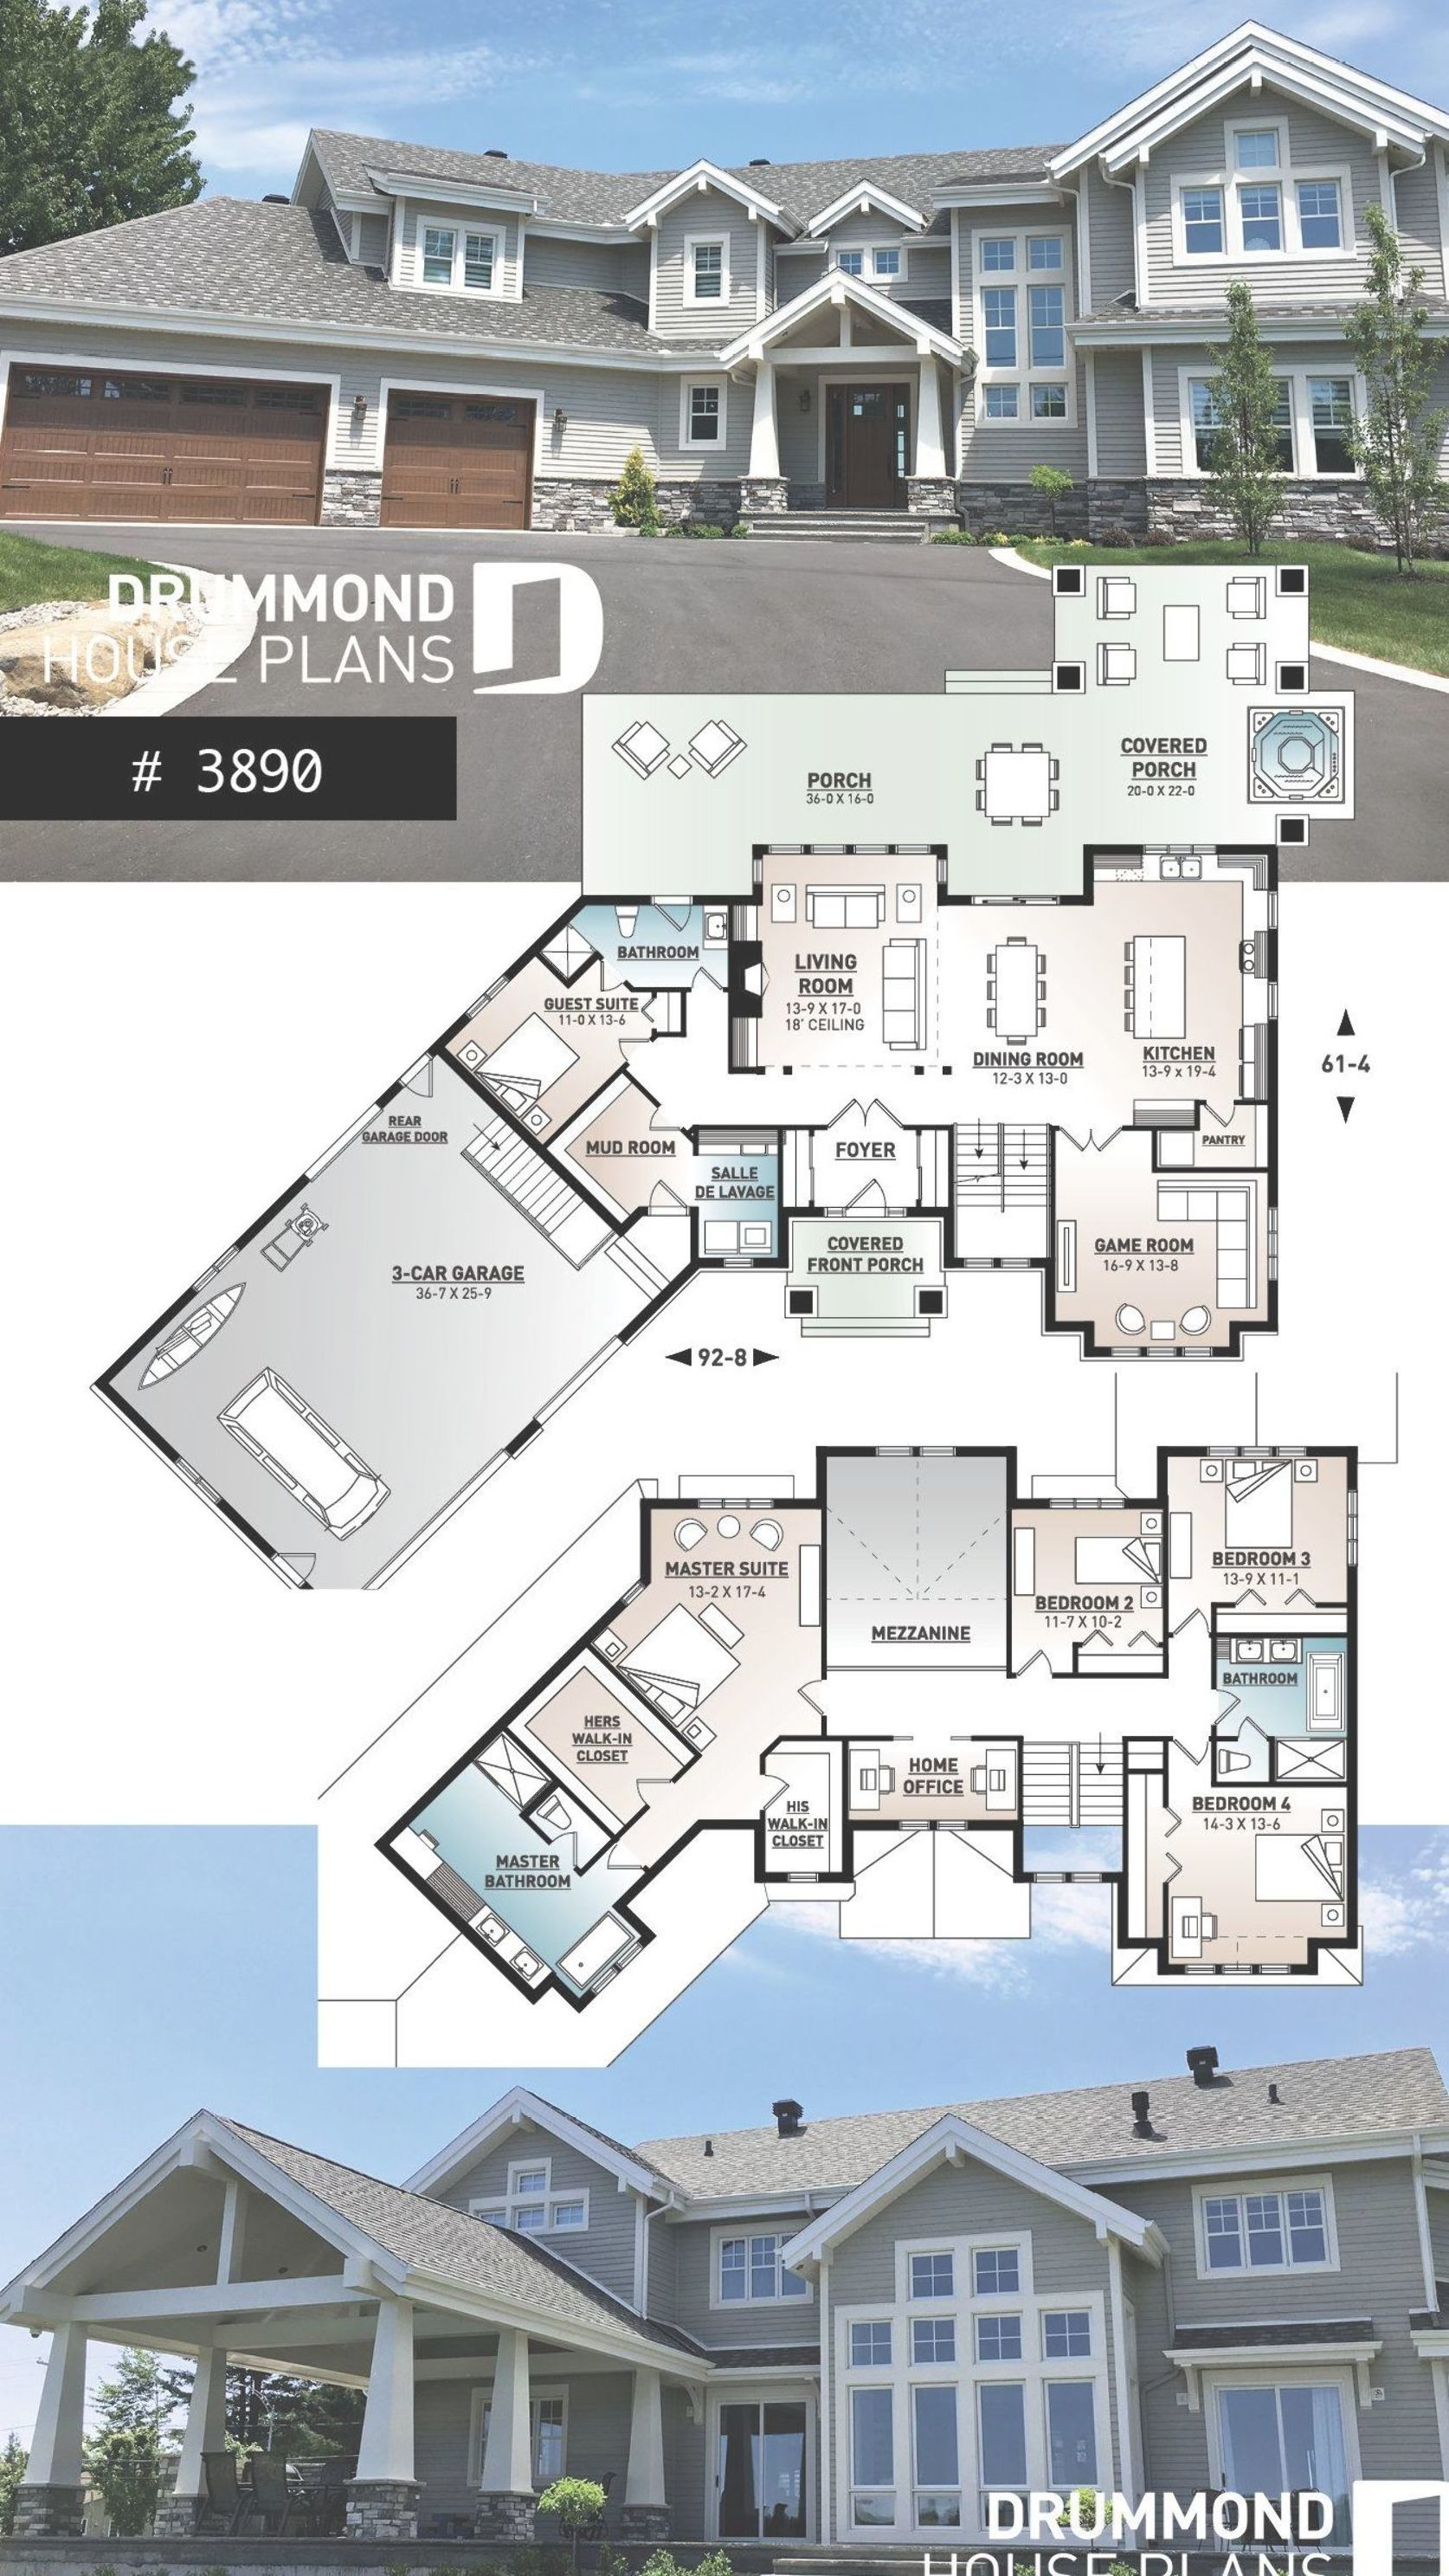 Luxury Cape Cod Style Home 4 To 5 Bedrooms Large Master Suite Open Layout Large Covered Deck Lakefront Pl Haus Grundriss Haus Architektur Architektur Haus